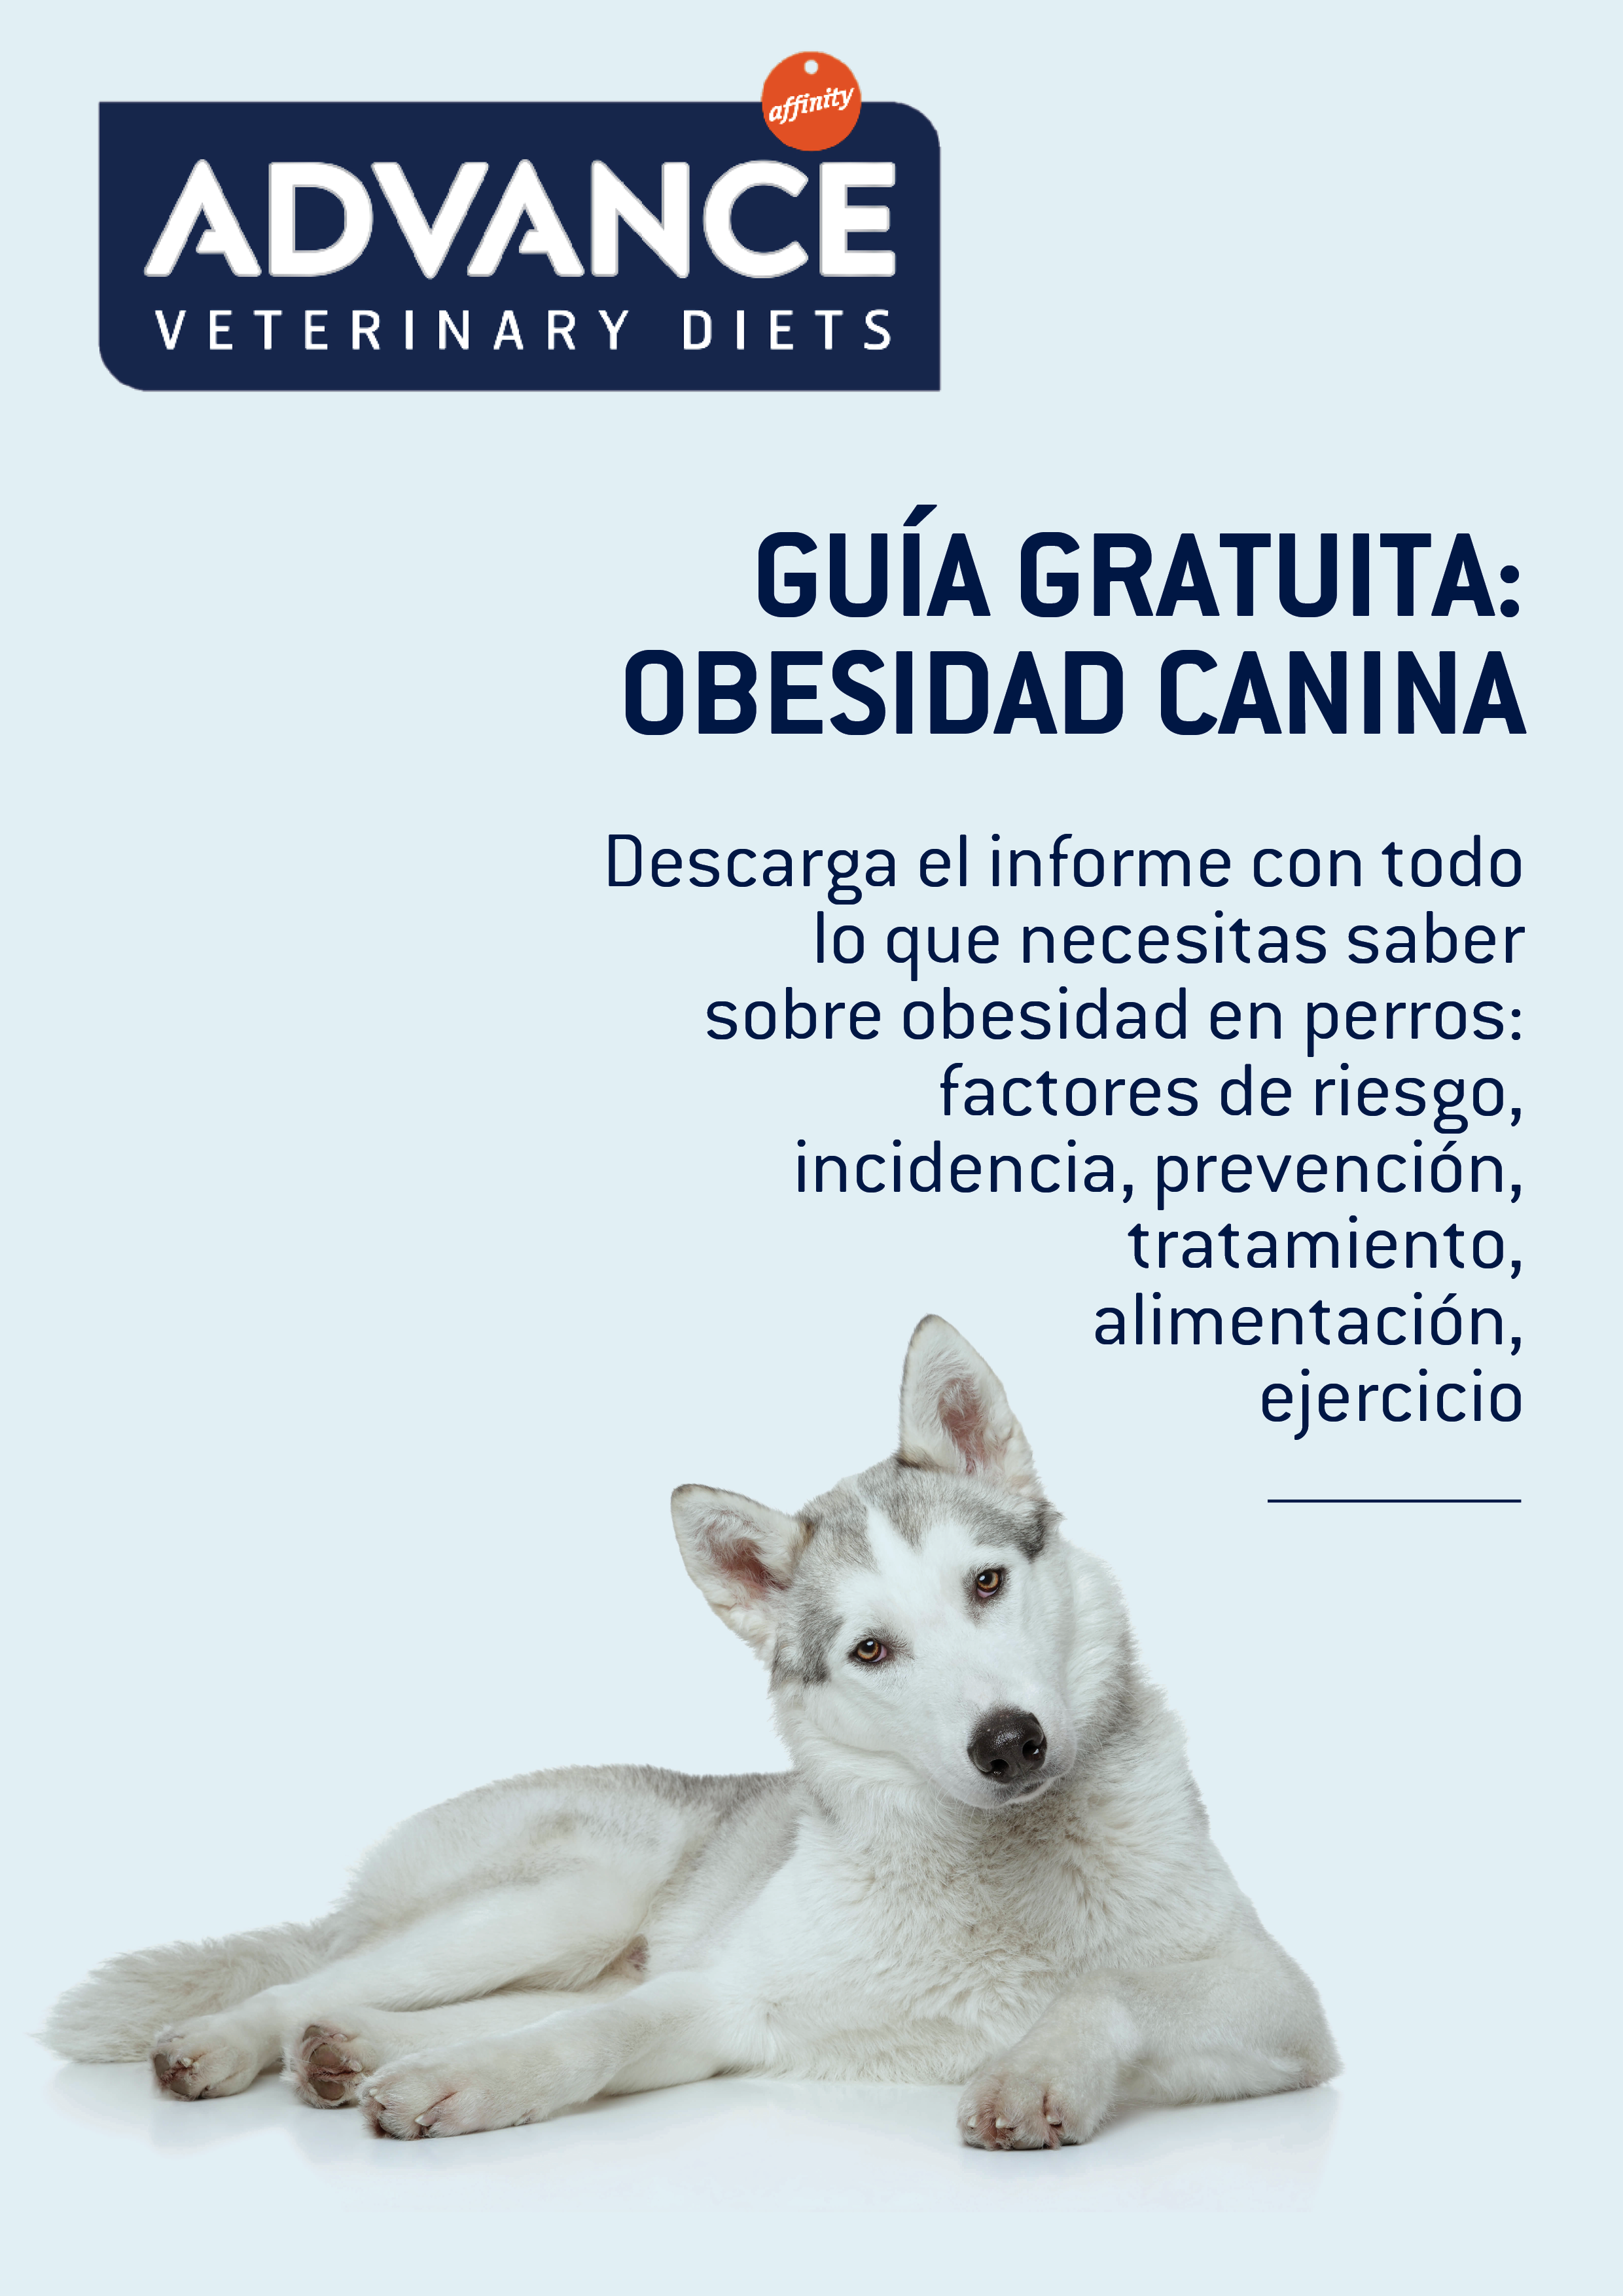 Affinity - RR Obesidad canina